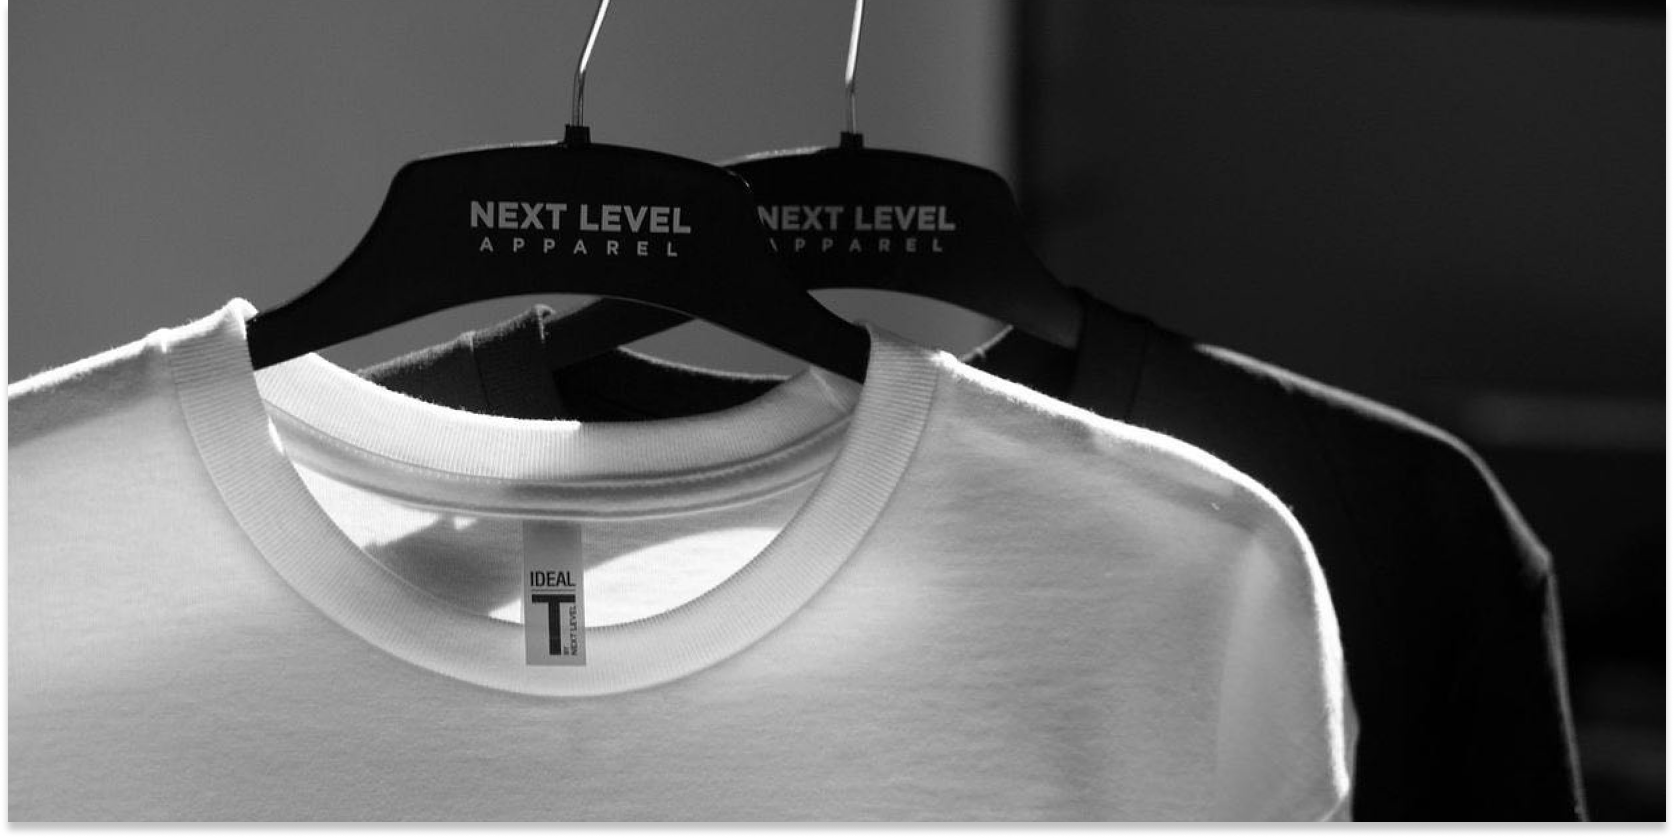 Level up your collection with Next Level Apparel